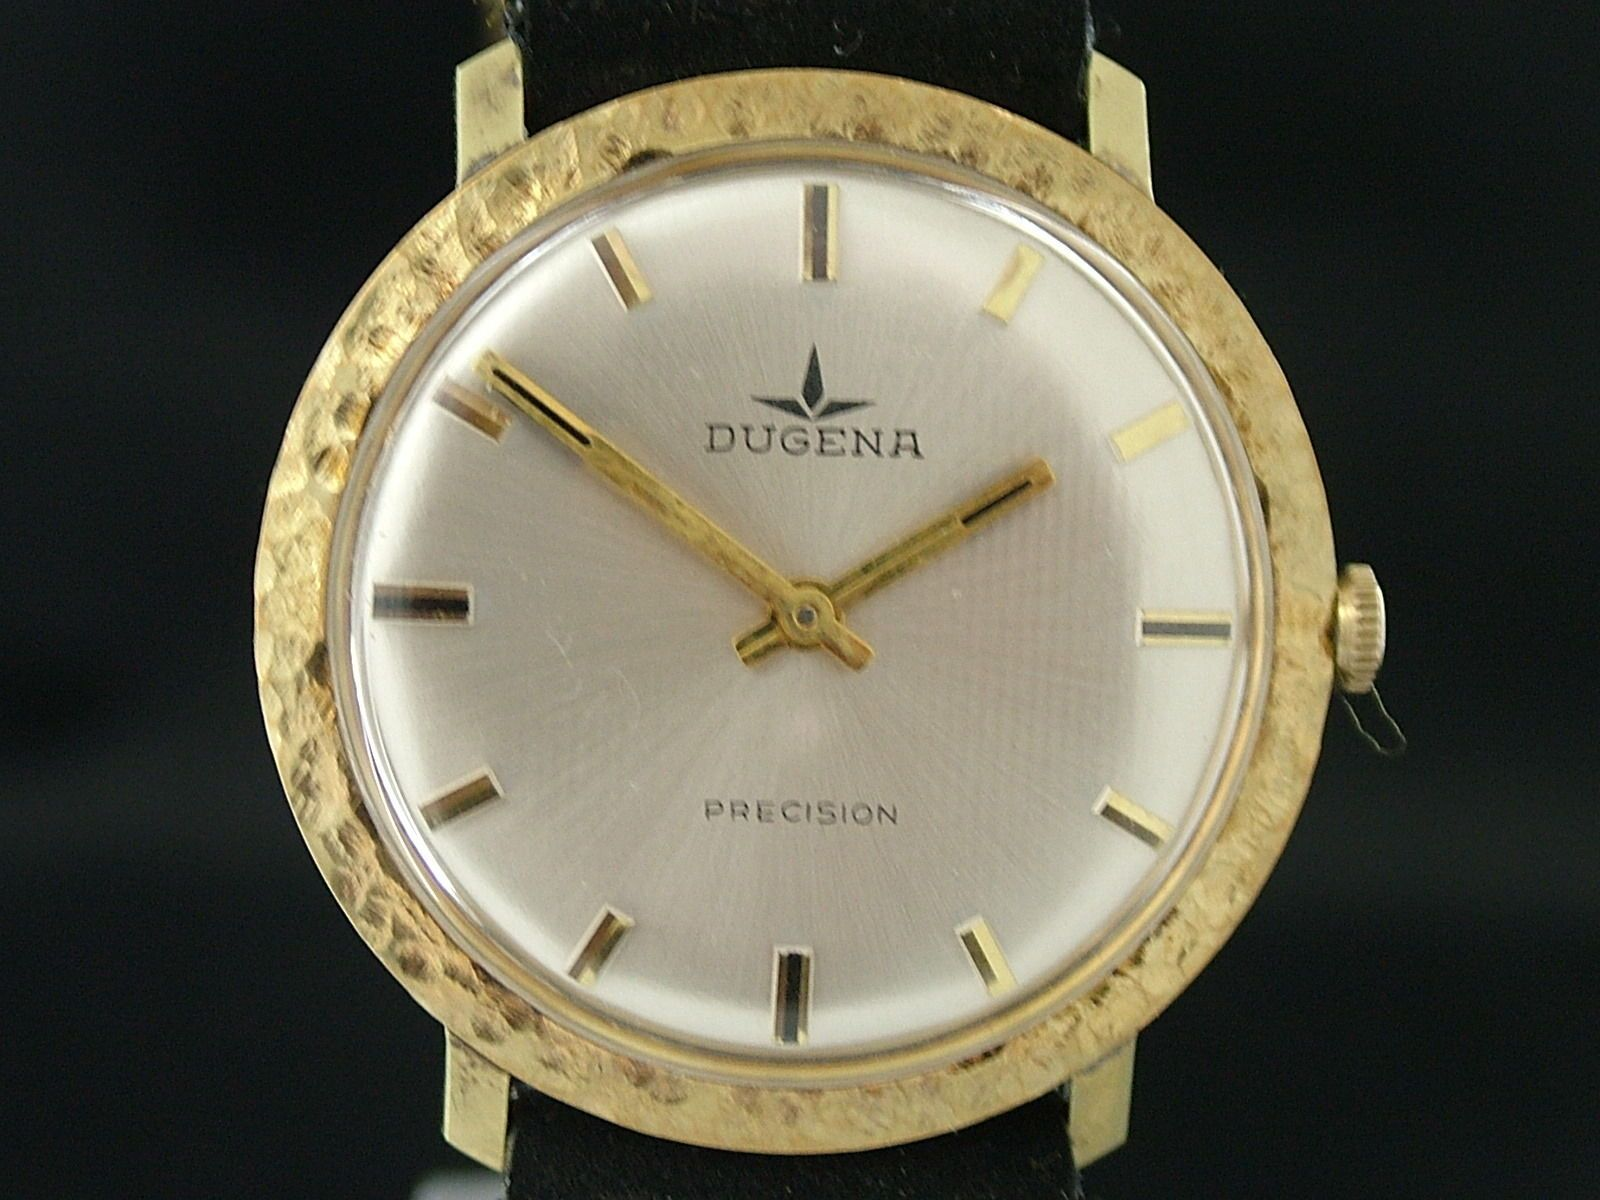 Vintage dugena #gents swiss mechanical #watch 1960s nos #brand new old stock,  View more on the LINK: http://www.zeppy.io/product/gb/2/162227826919/